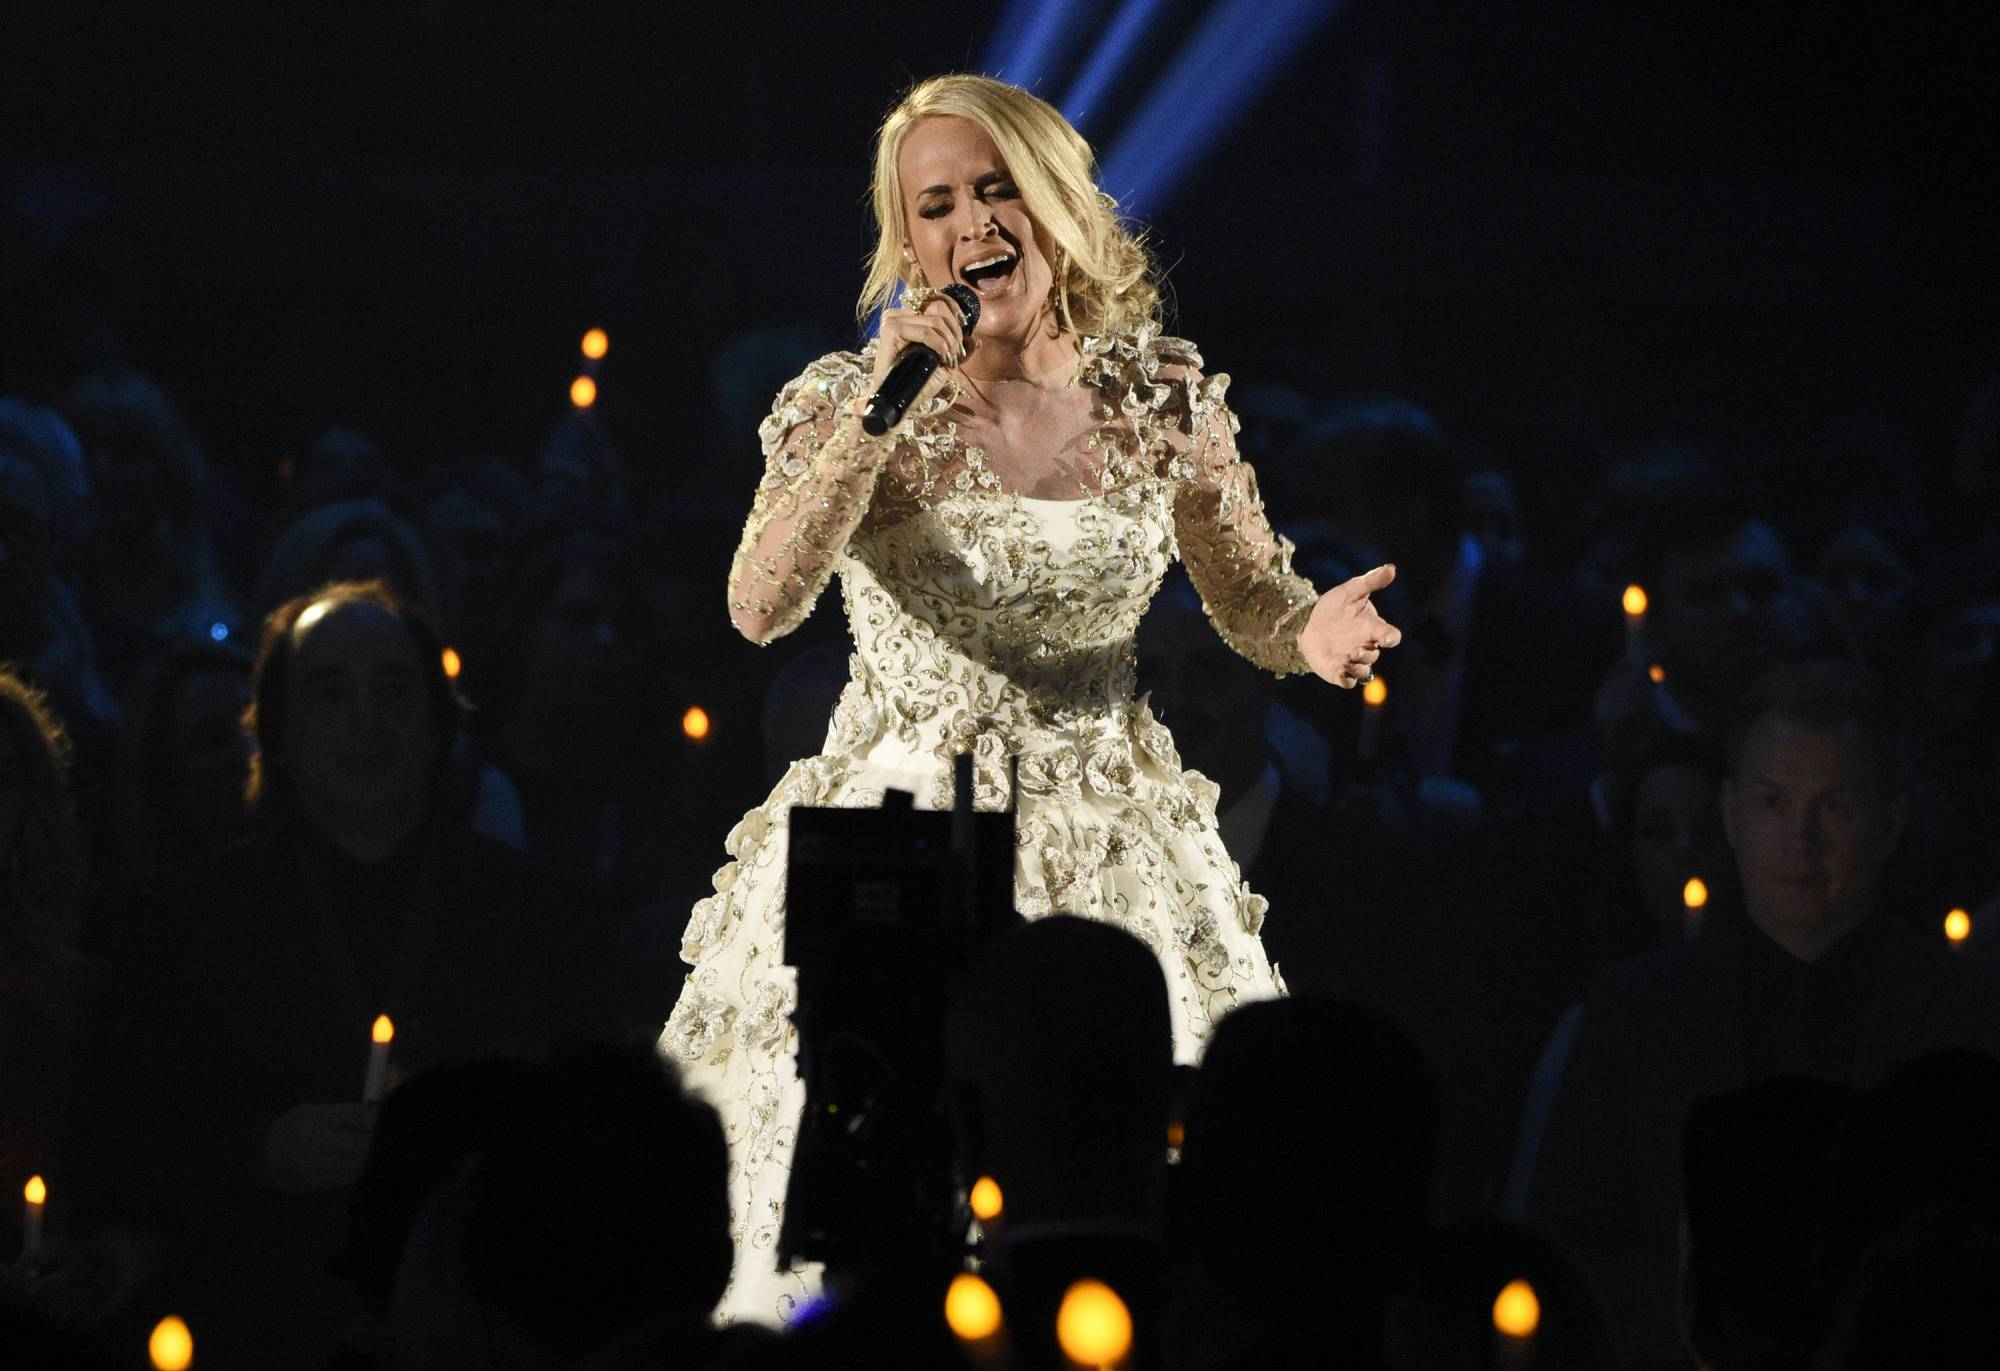 Singer carrie underwood recuperating after fall at home wtop Carrie underwood softly and tenderly